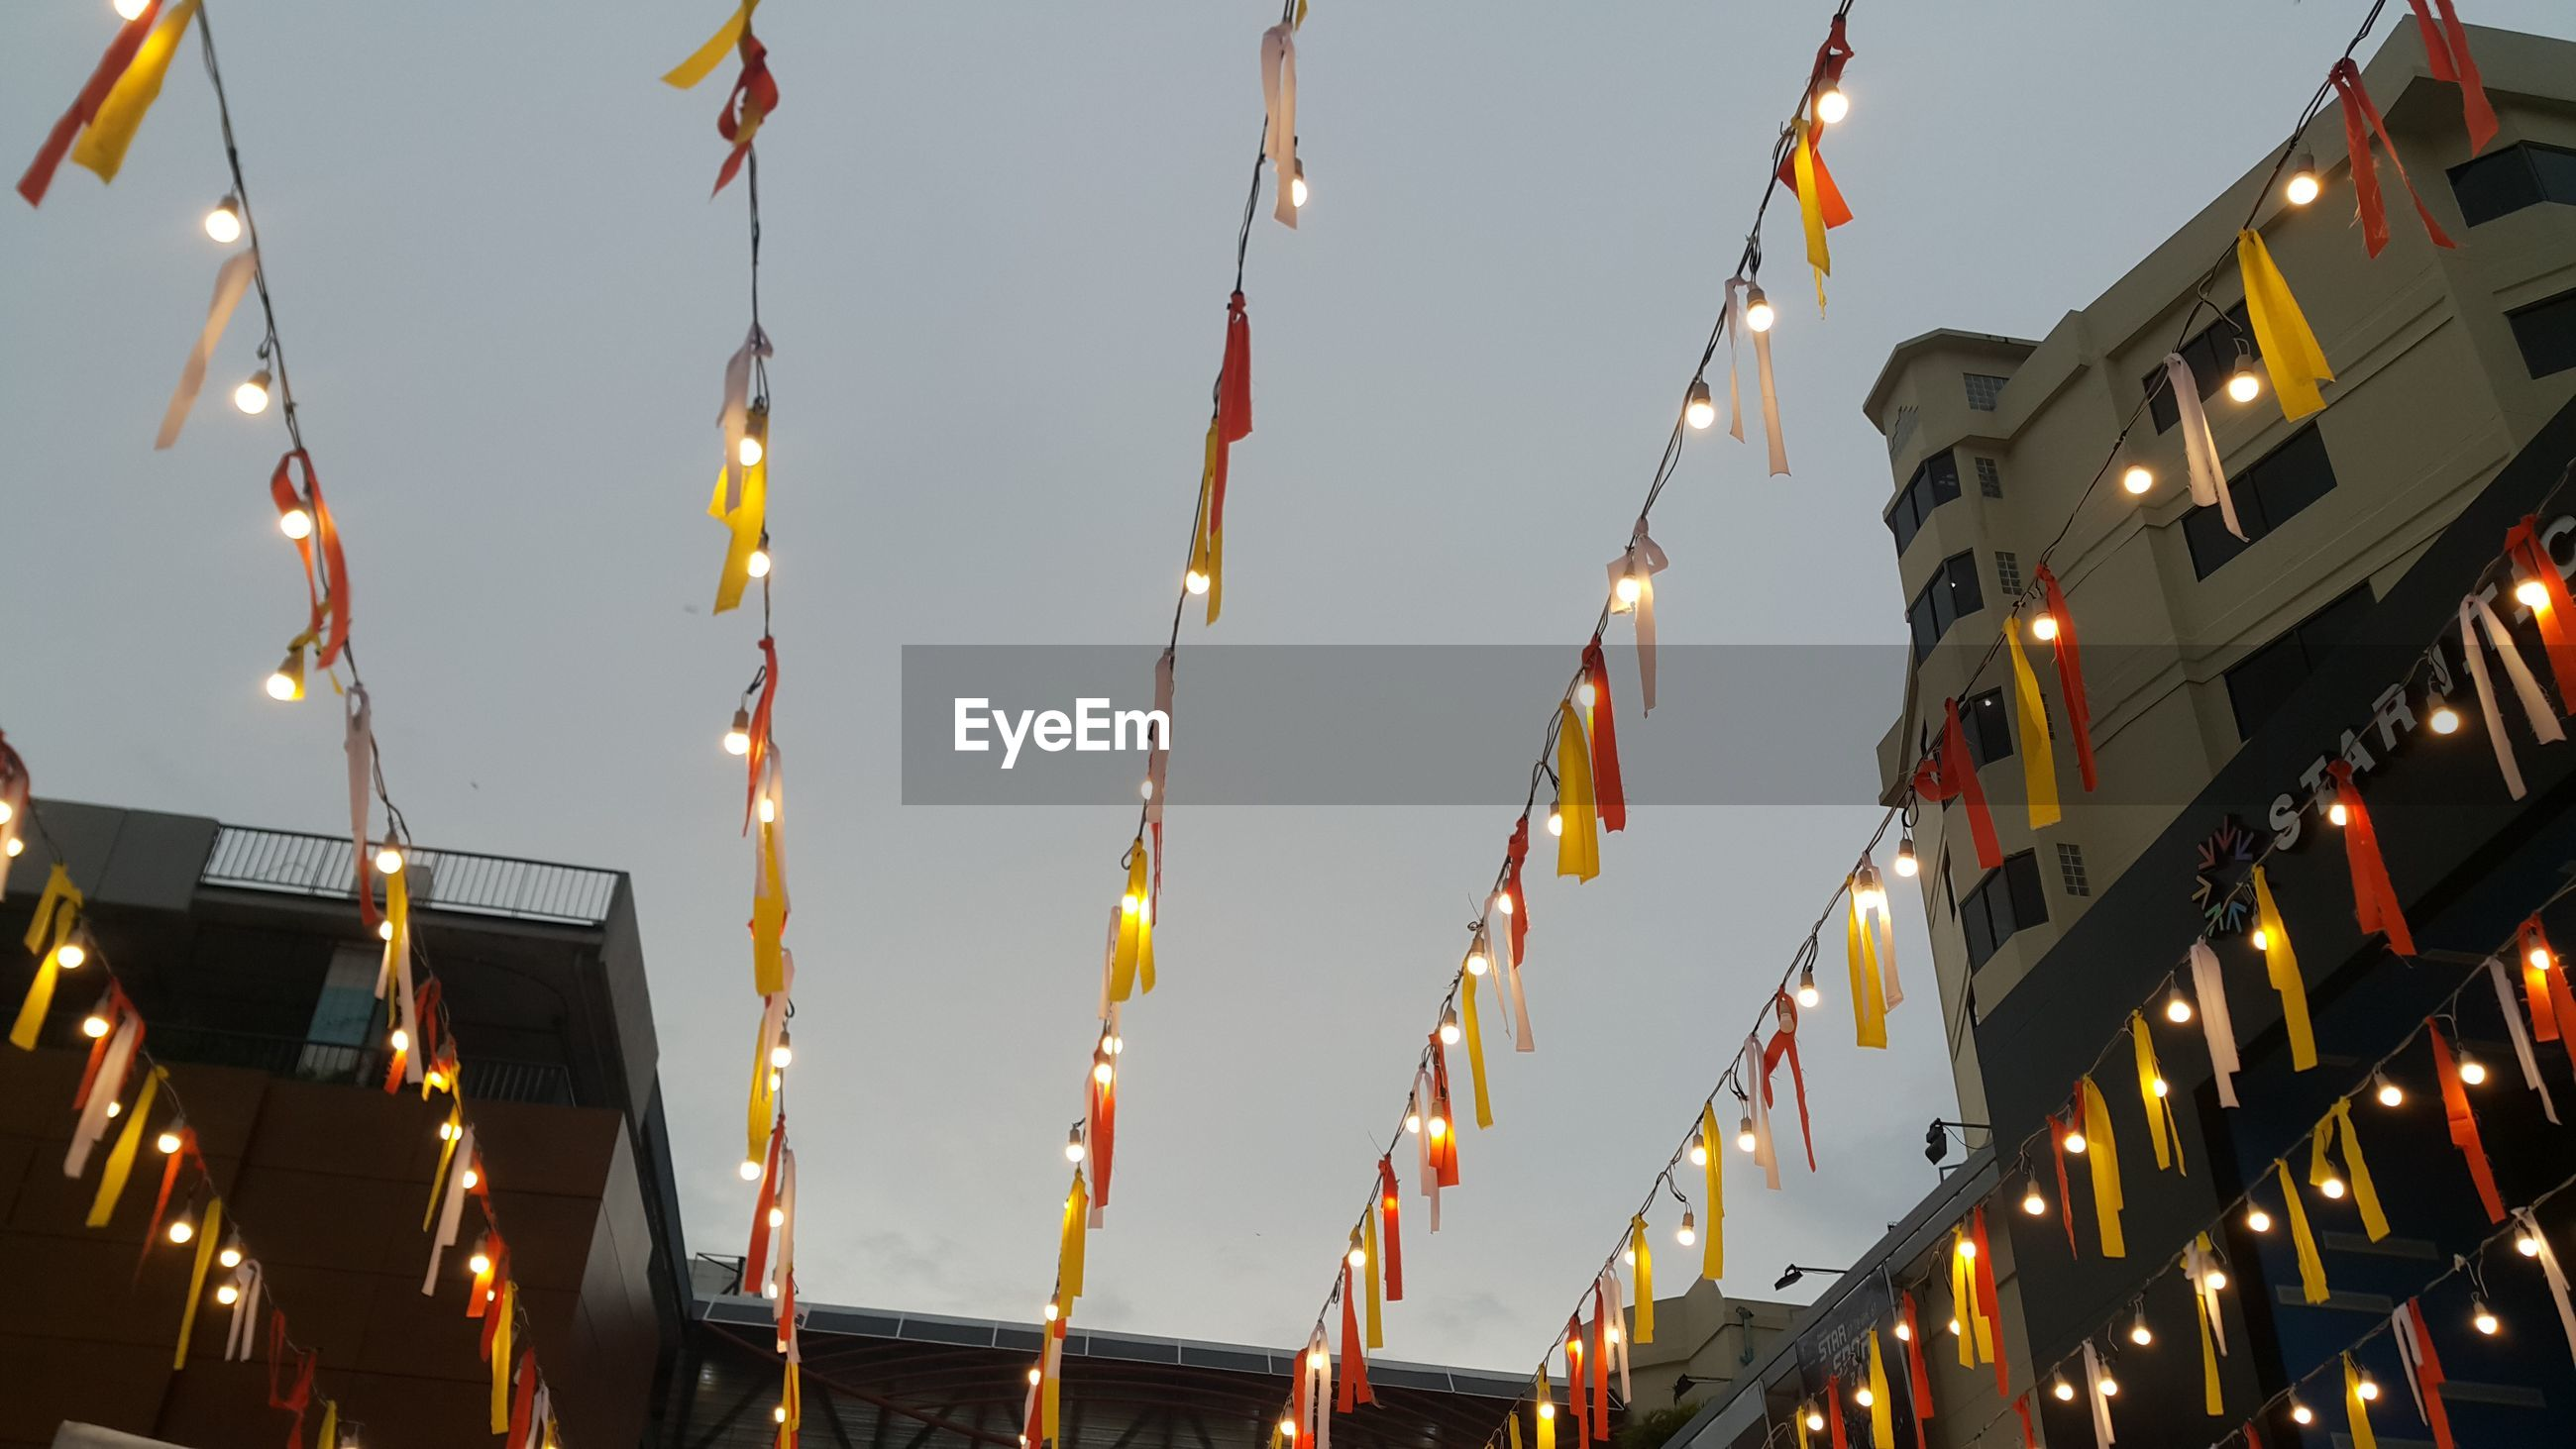 Low angle view of illuminated lights against building and sky at night